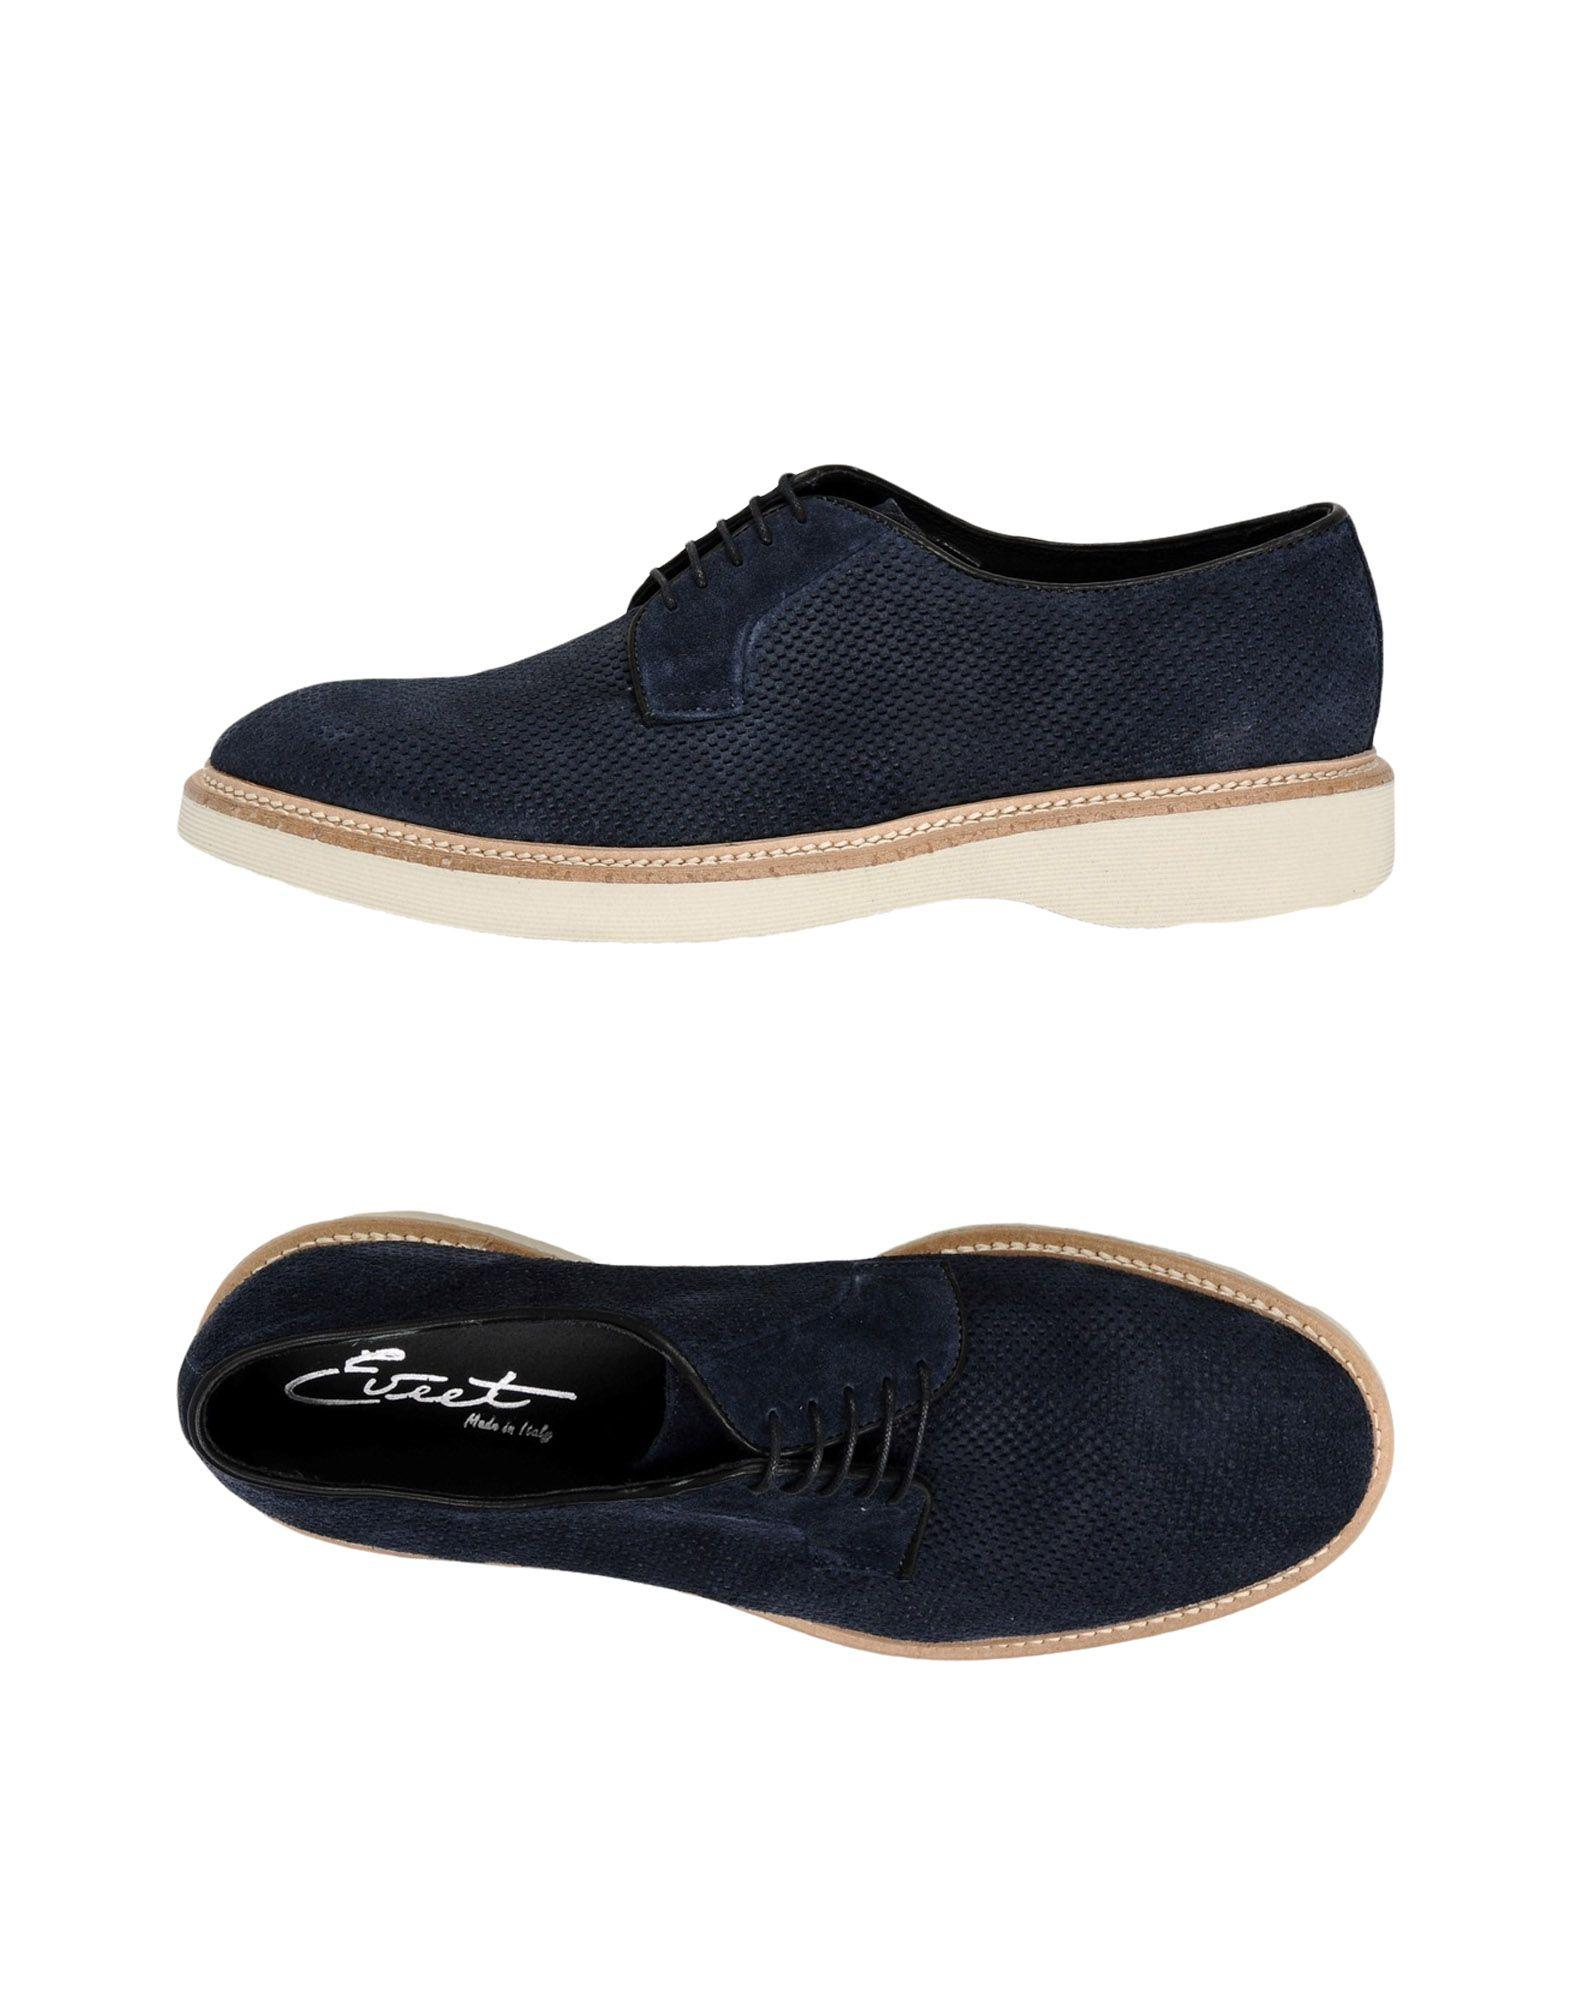 Eveet Laced Shoes In Dark Blue